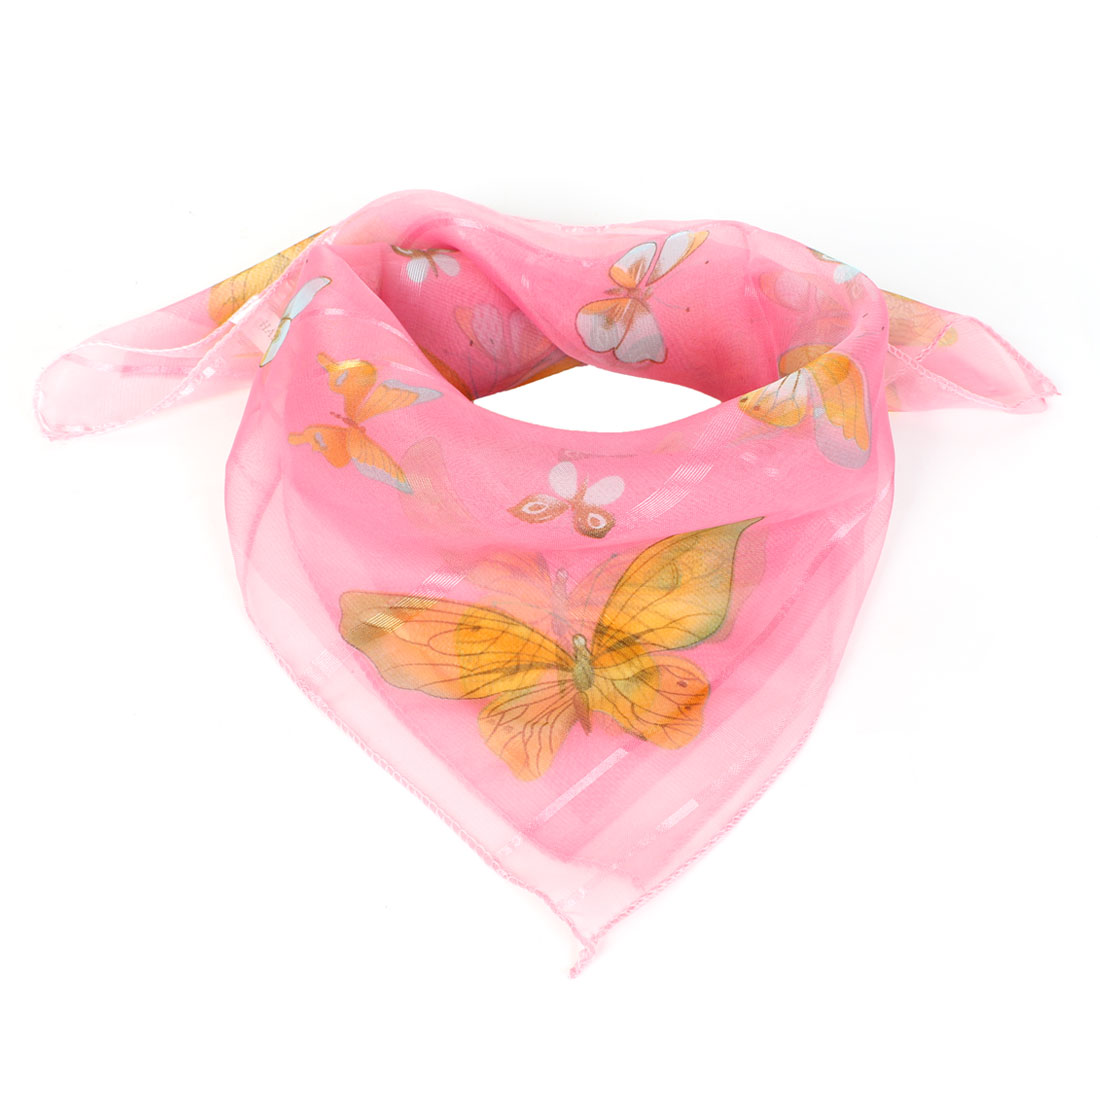 Butterfly Printed Polyester Neck Scarf Neckerchief Pink for Women